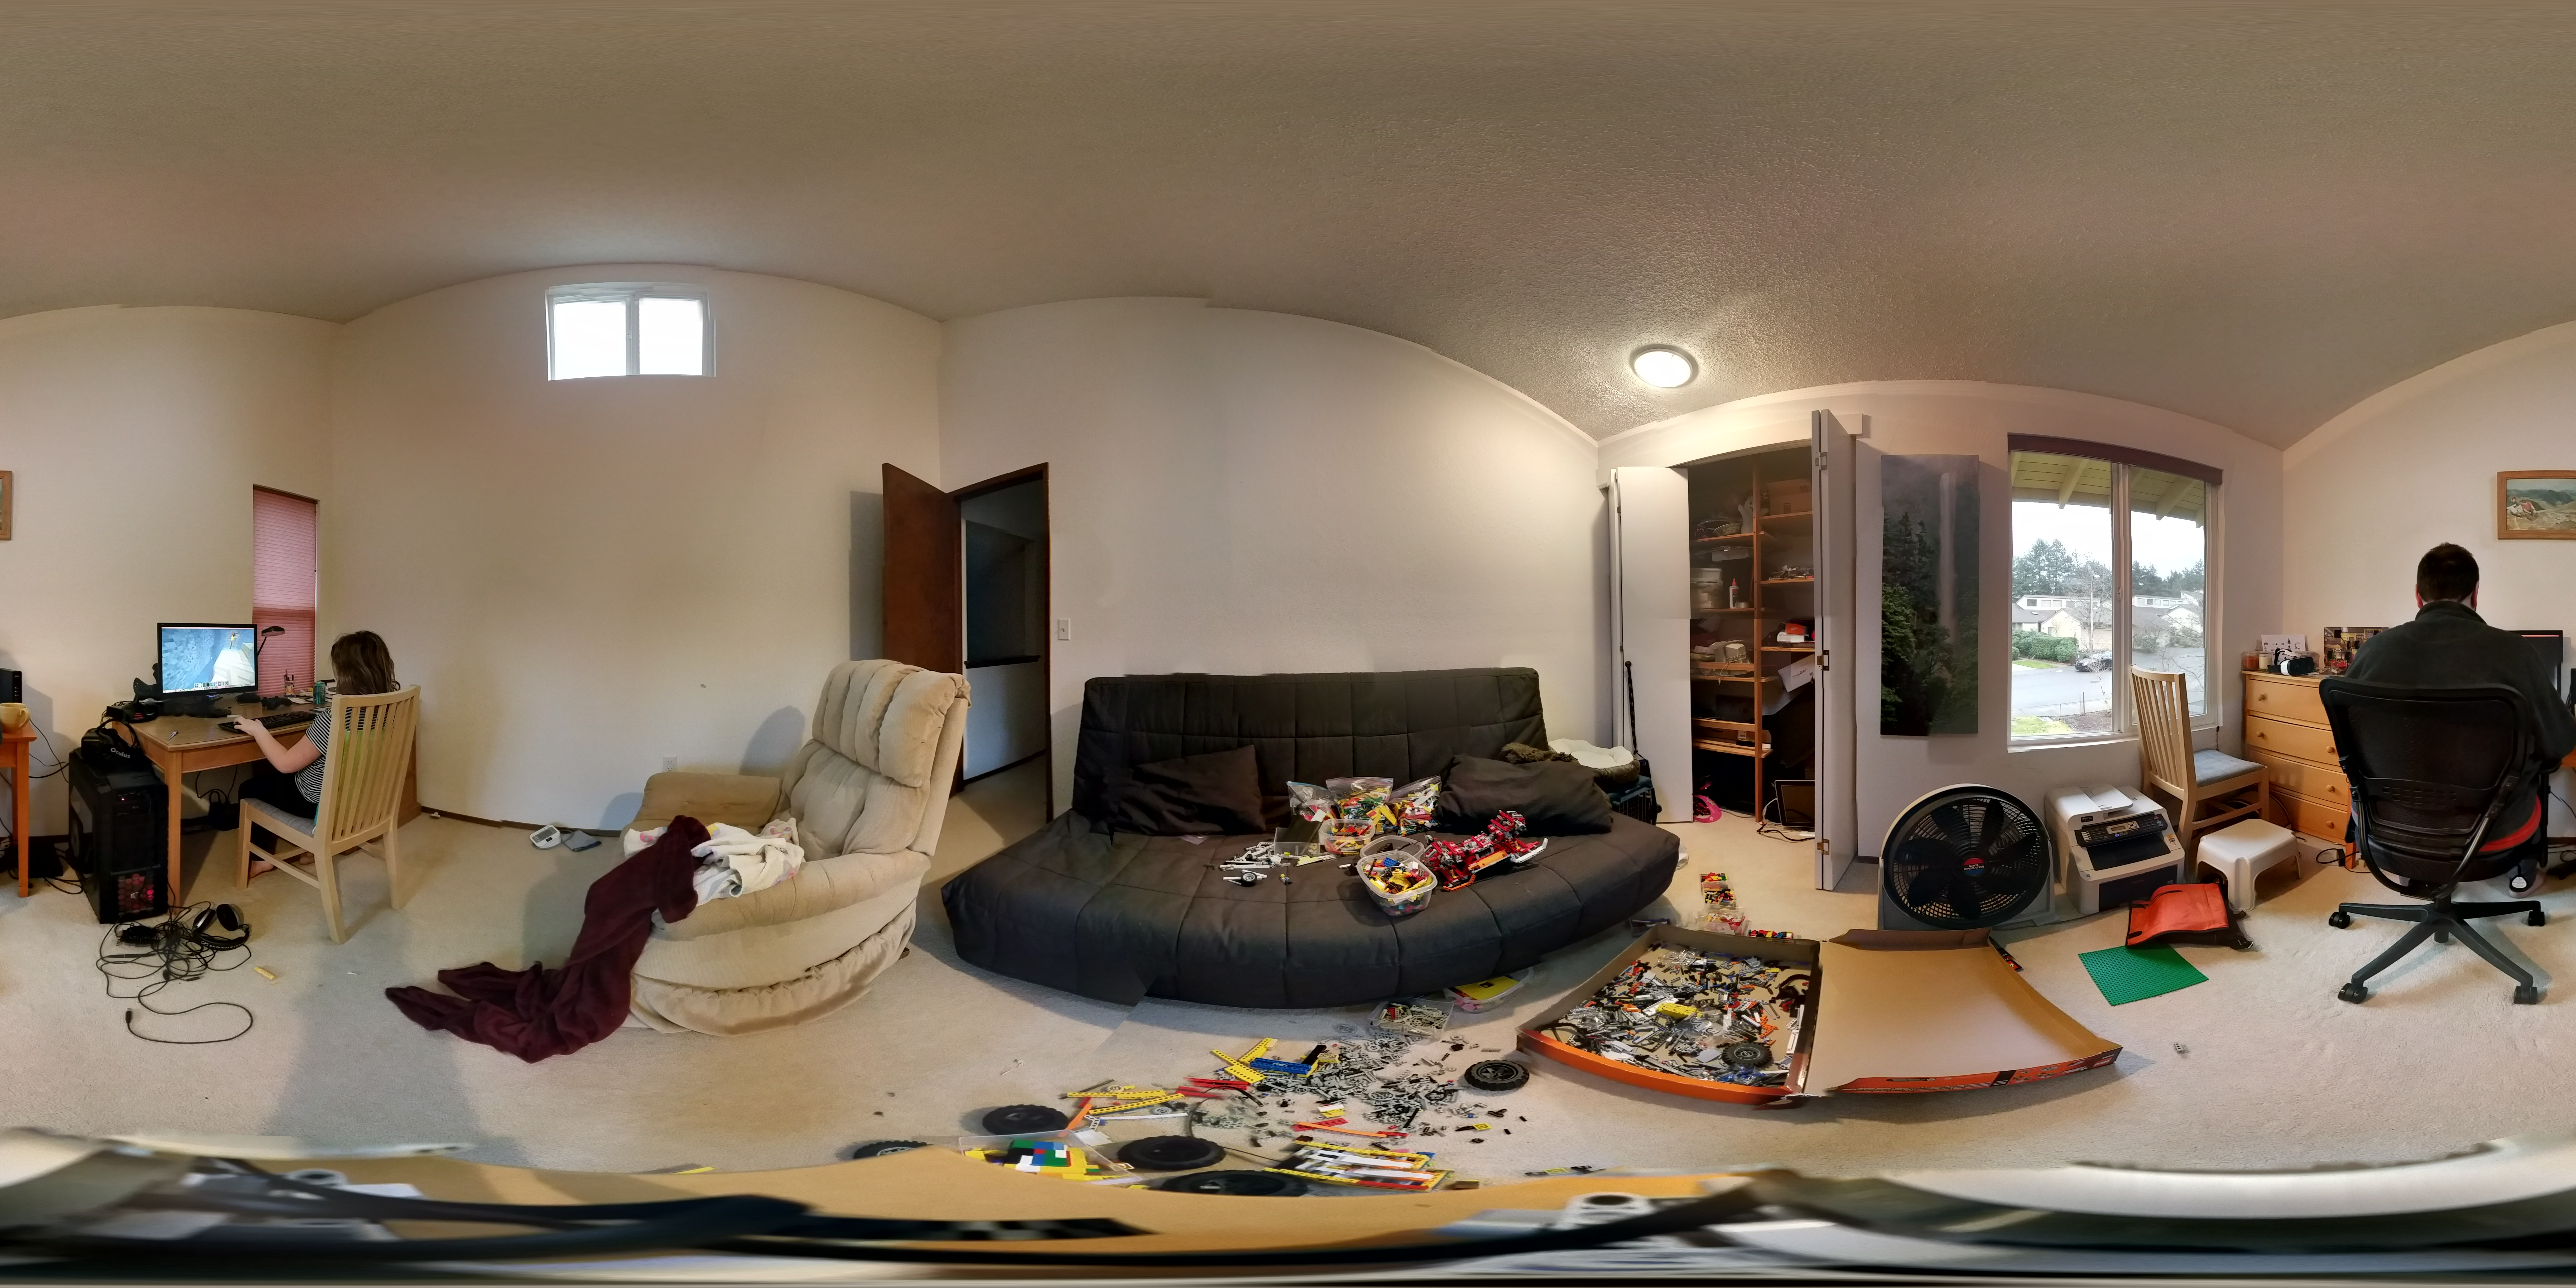 Sample 360° Photo for Gear VR taken using the Lego Photobot